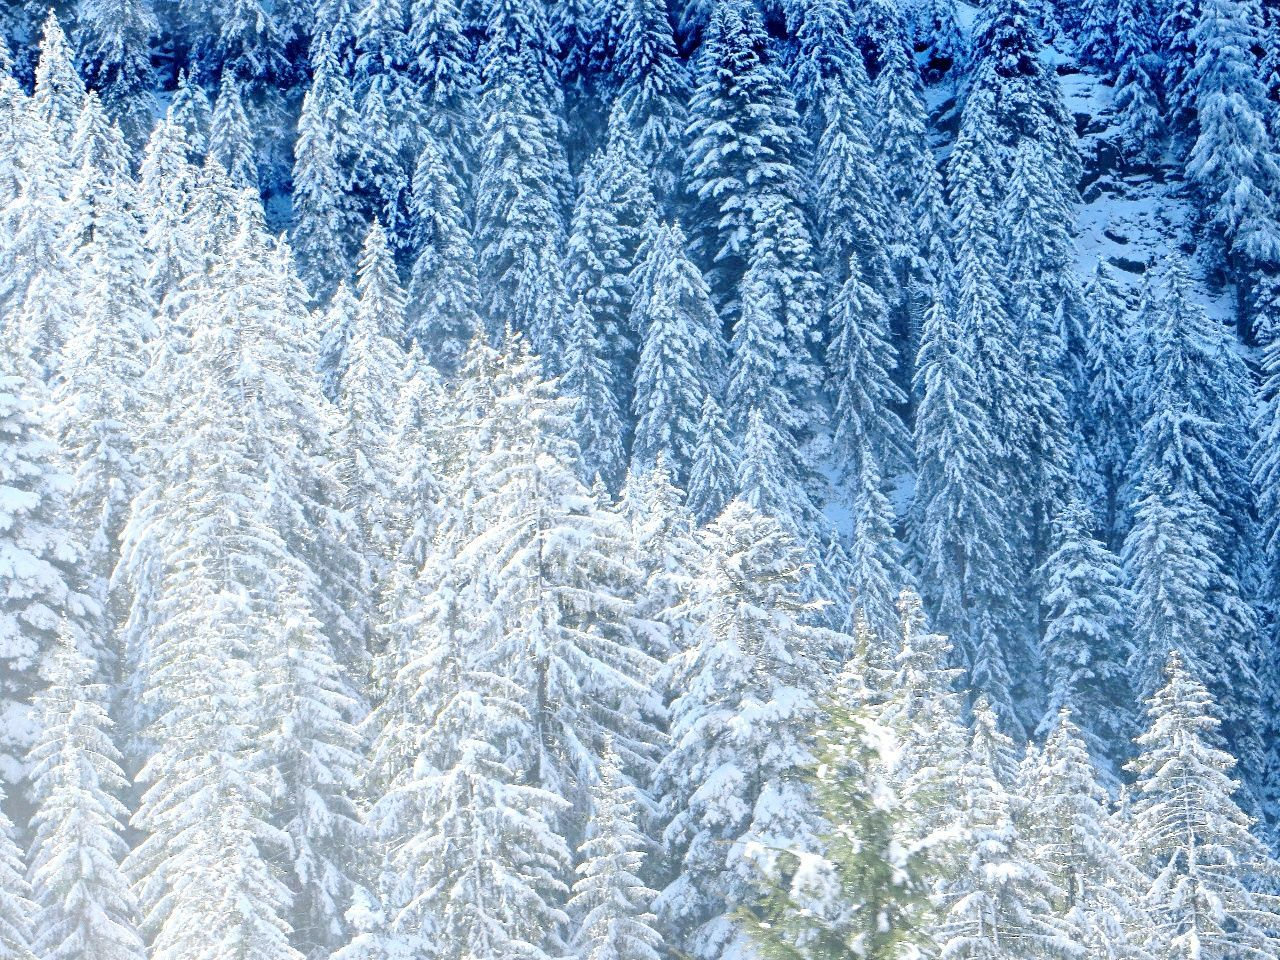 winter, snow, cold temperature, ice, snowflake, backgrounds, window, weather, ice crystal, no people, full frame, nature, christmas, frozen, frost, blue, spruce tree, day, beauty in nature, tree, outdoors, close-up